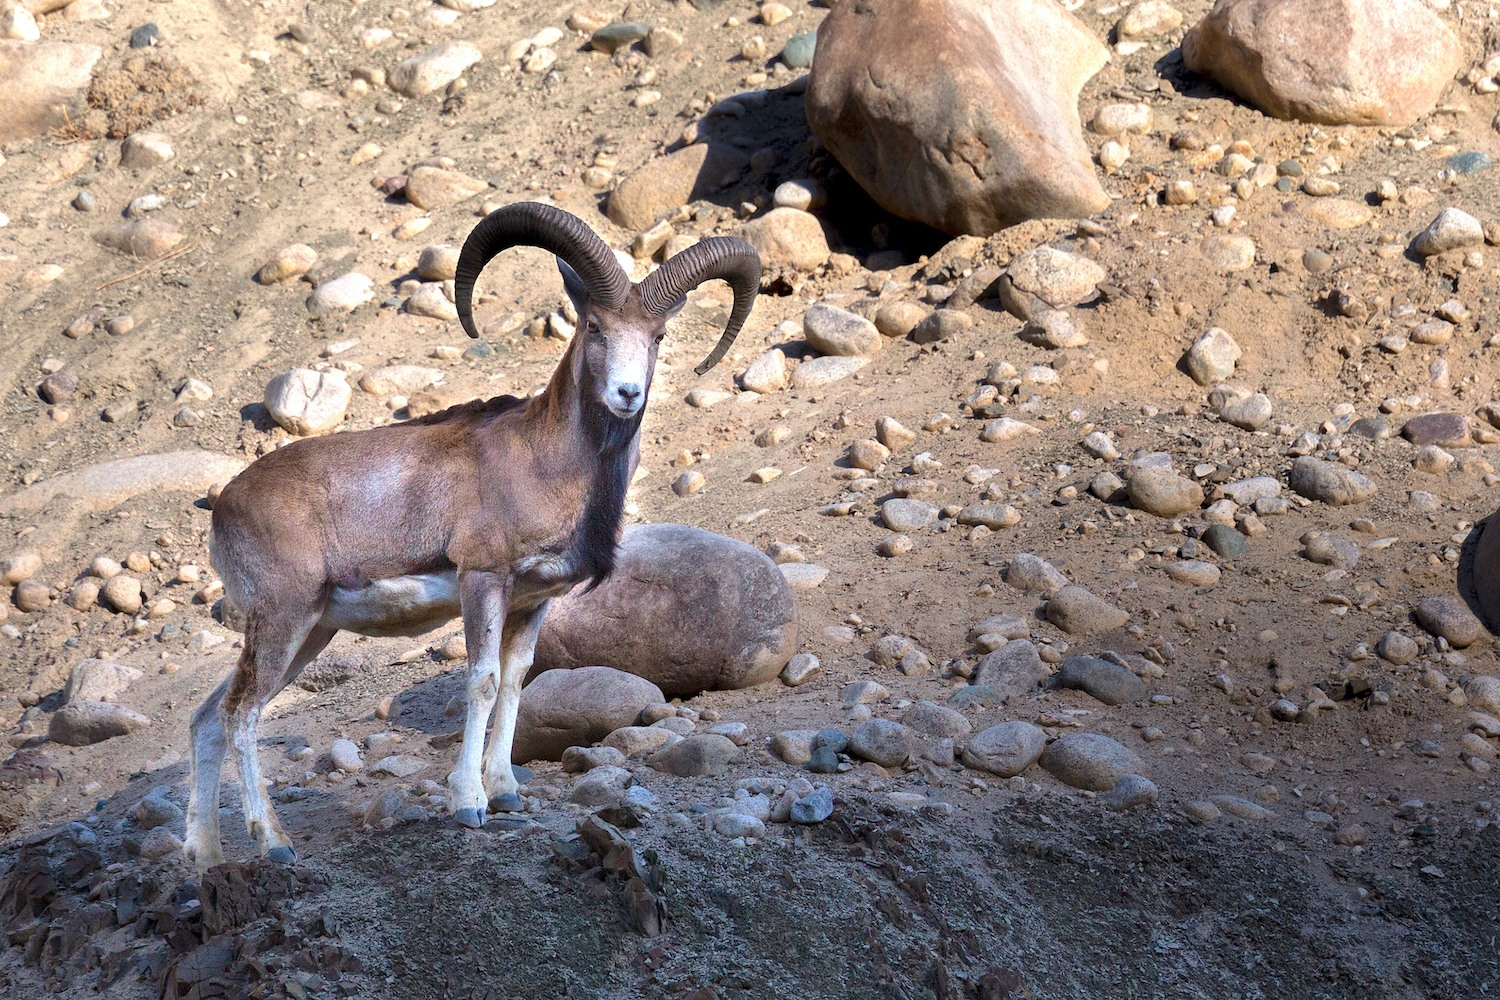 Urial rams have impressive horns that allow them to assert dominance over other males and impress females. Photo: Arindam Bhattacharya  A mixed herd of the beautiful wild sheep, Ladakh urial. Cover Photo: Dhritiman Mukherjee